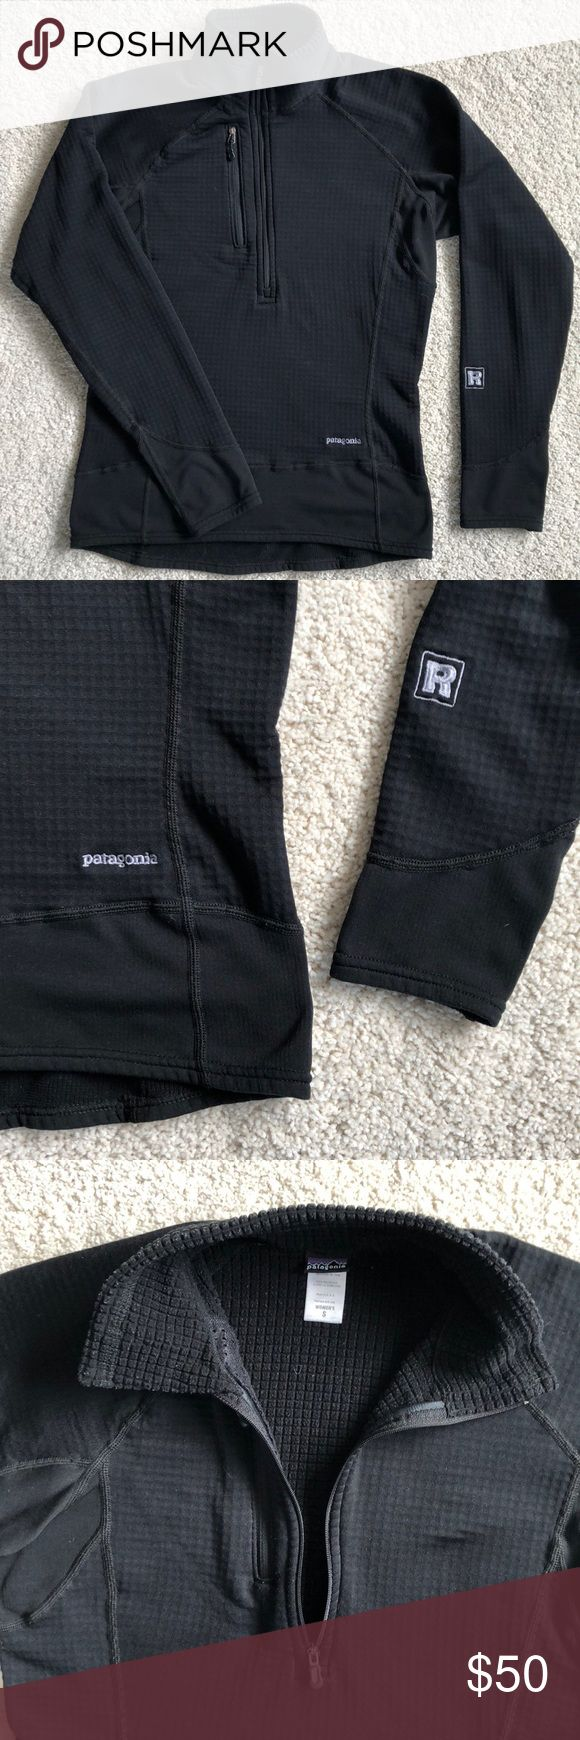 Patagonia Women's R1 Pullover Patagonia  R1 Pullover Women's Small Black 🐧🖤 Fall 2007 The Patagonia R1 Hoody is a timeless classic, a standard for mid layers ❄️ Polartec Power Grid fabric with odor control Light and breathable with outstanding stretch and durability Pullover silhouette has deep center-front zipper for quick venting One left-chest pocket Smoke and pet free home; in good used condition! Wear shown in photo. Patagonia Sweaters